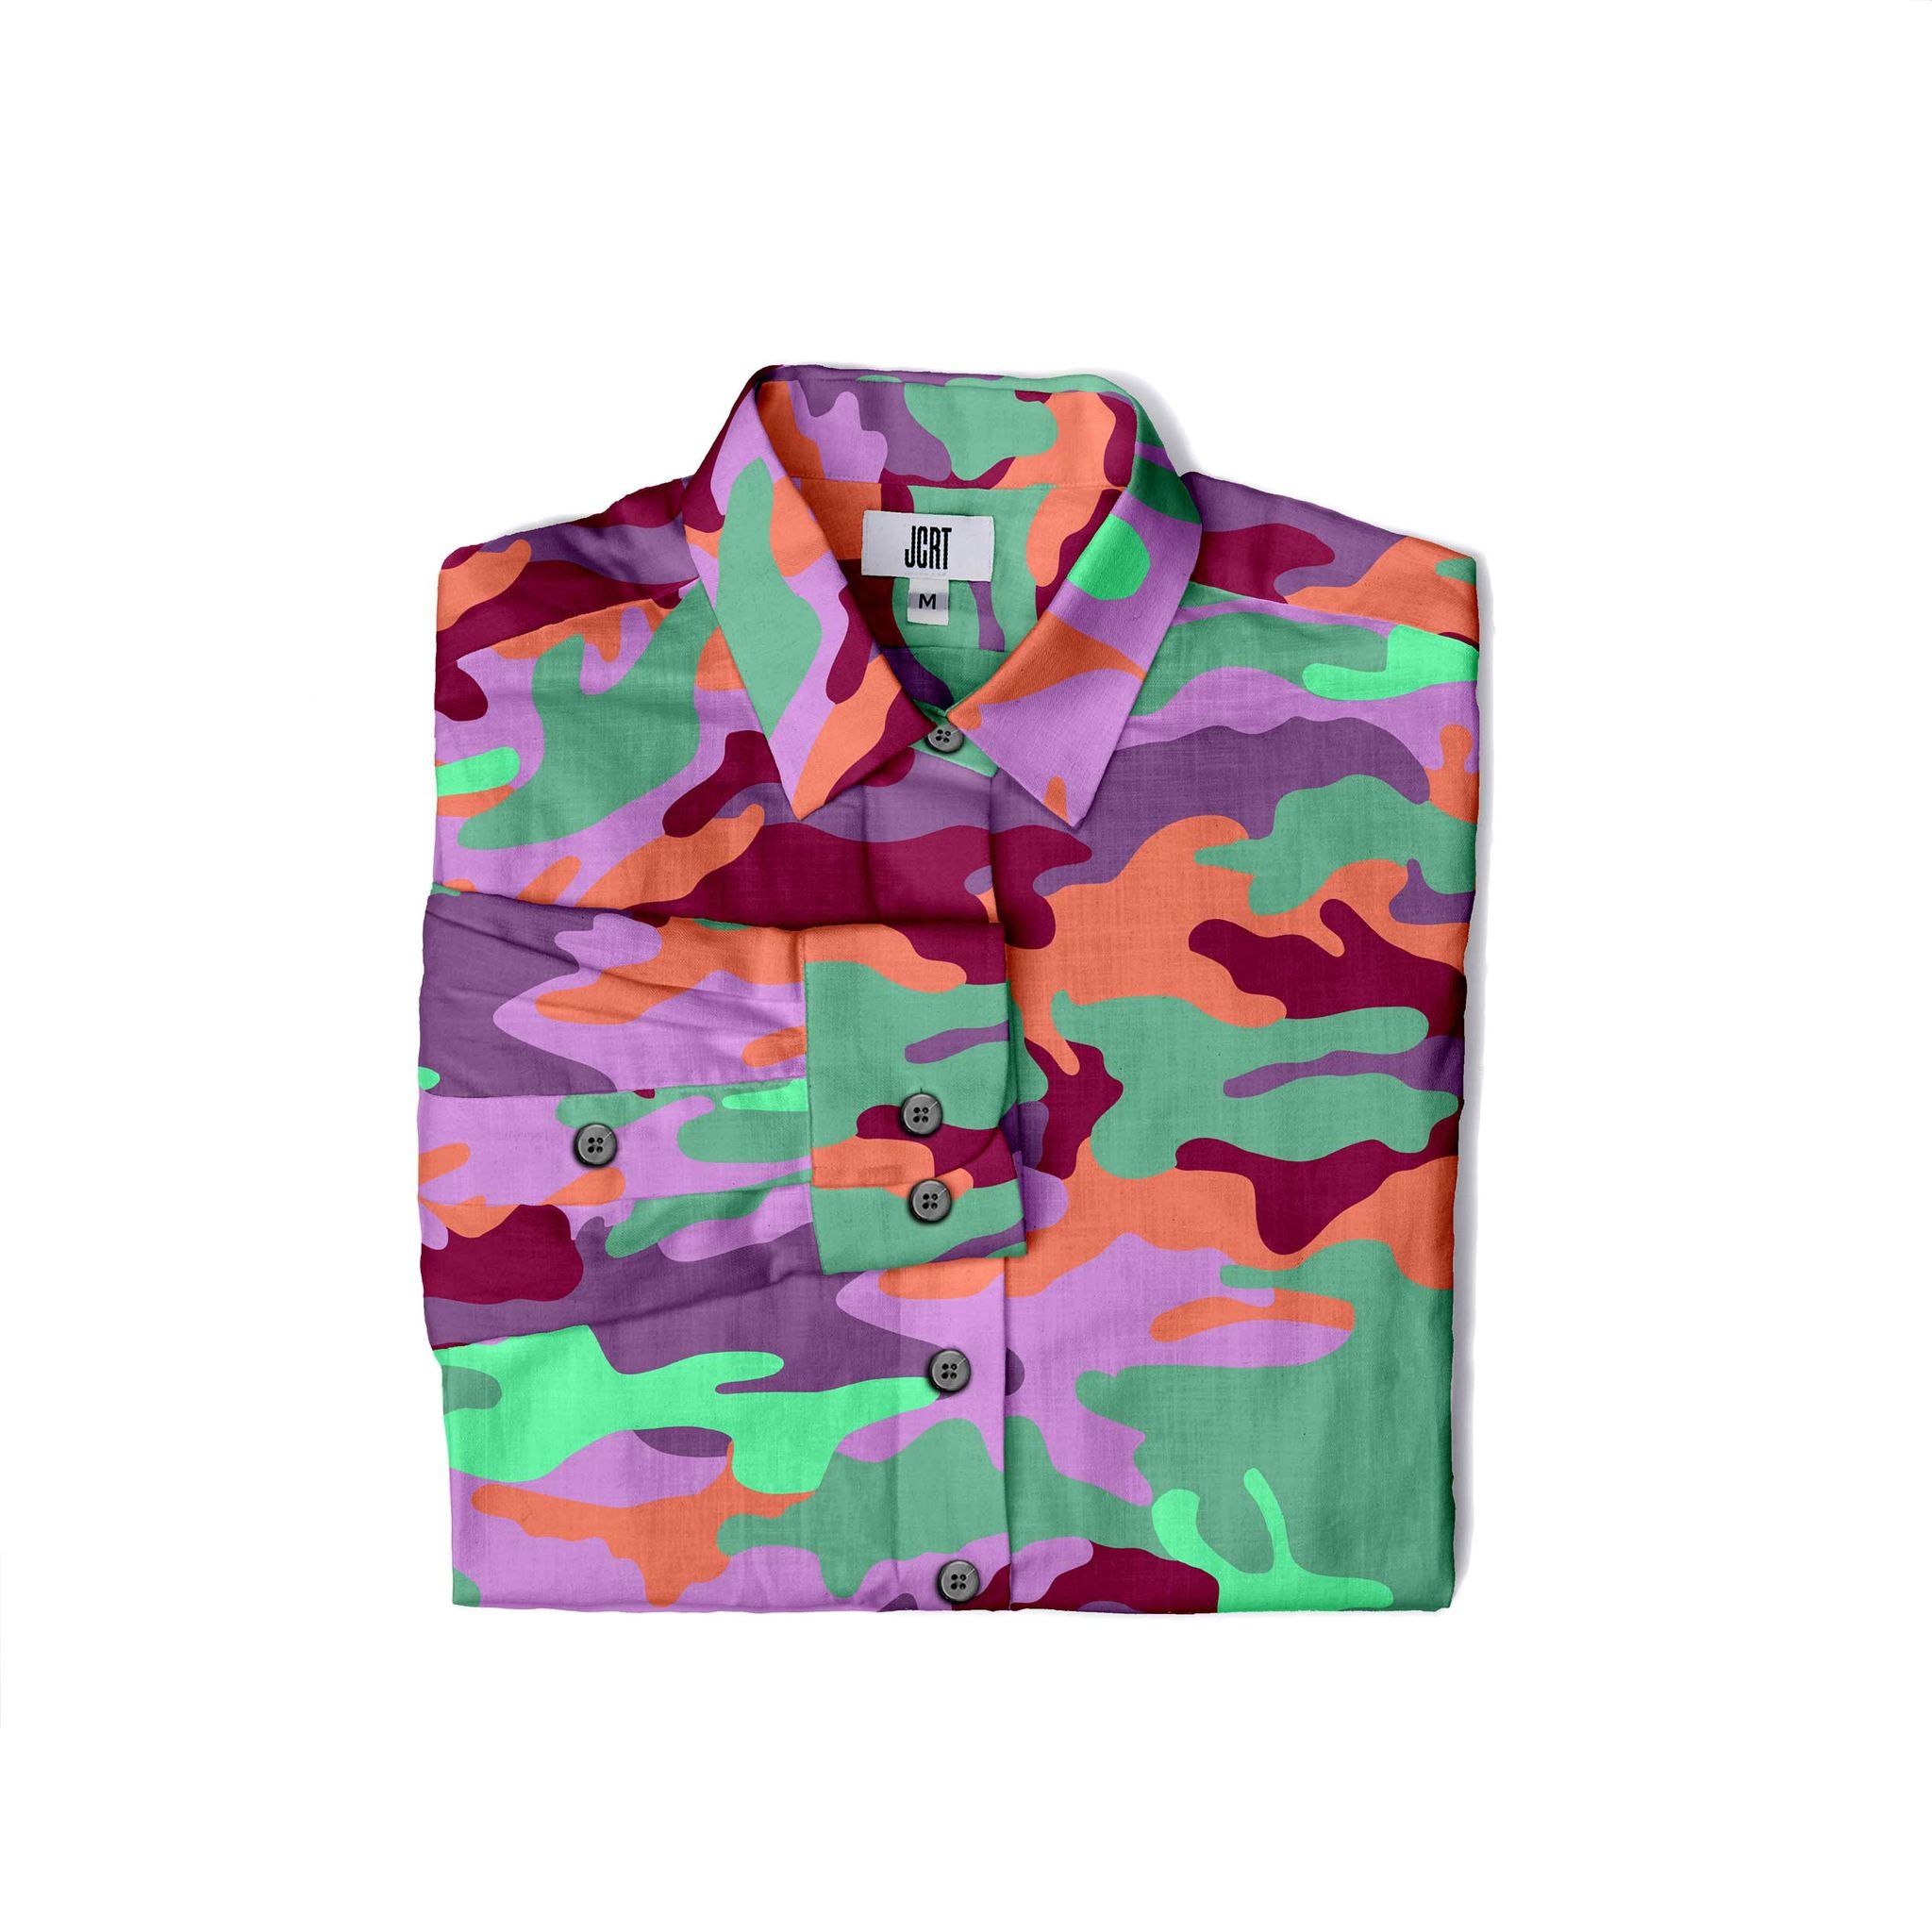 The JCRT Stubbs & Wootton Purple Camo Women's Shirt